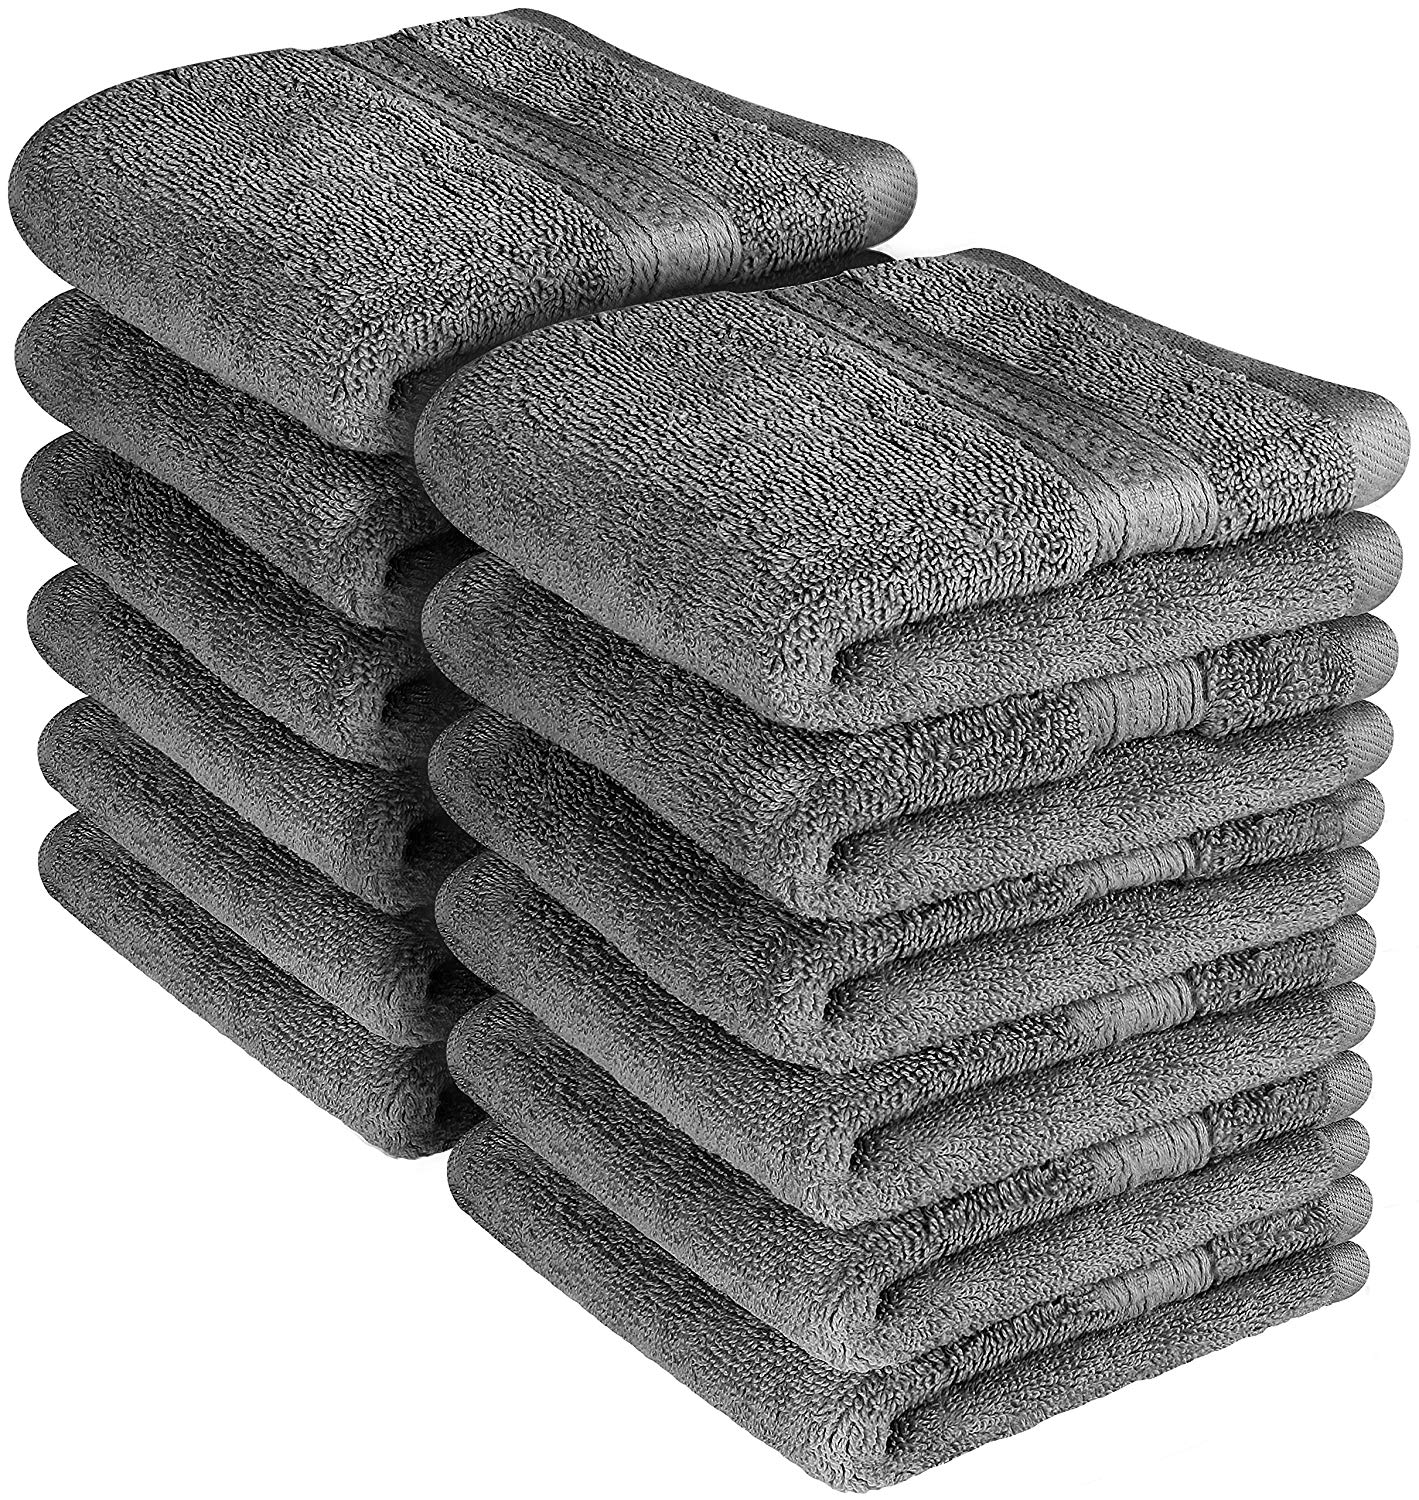 Beauty Threadz Premium 700 GSM Washcloths Towels Set (12 Pack, Grey, 12 x 12 Inches) Multipurpose Extra Soft... by Beauty Threadz